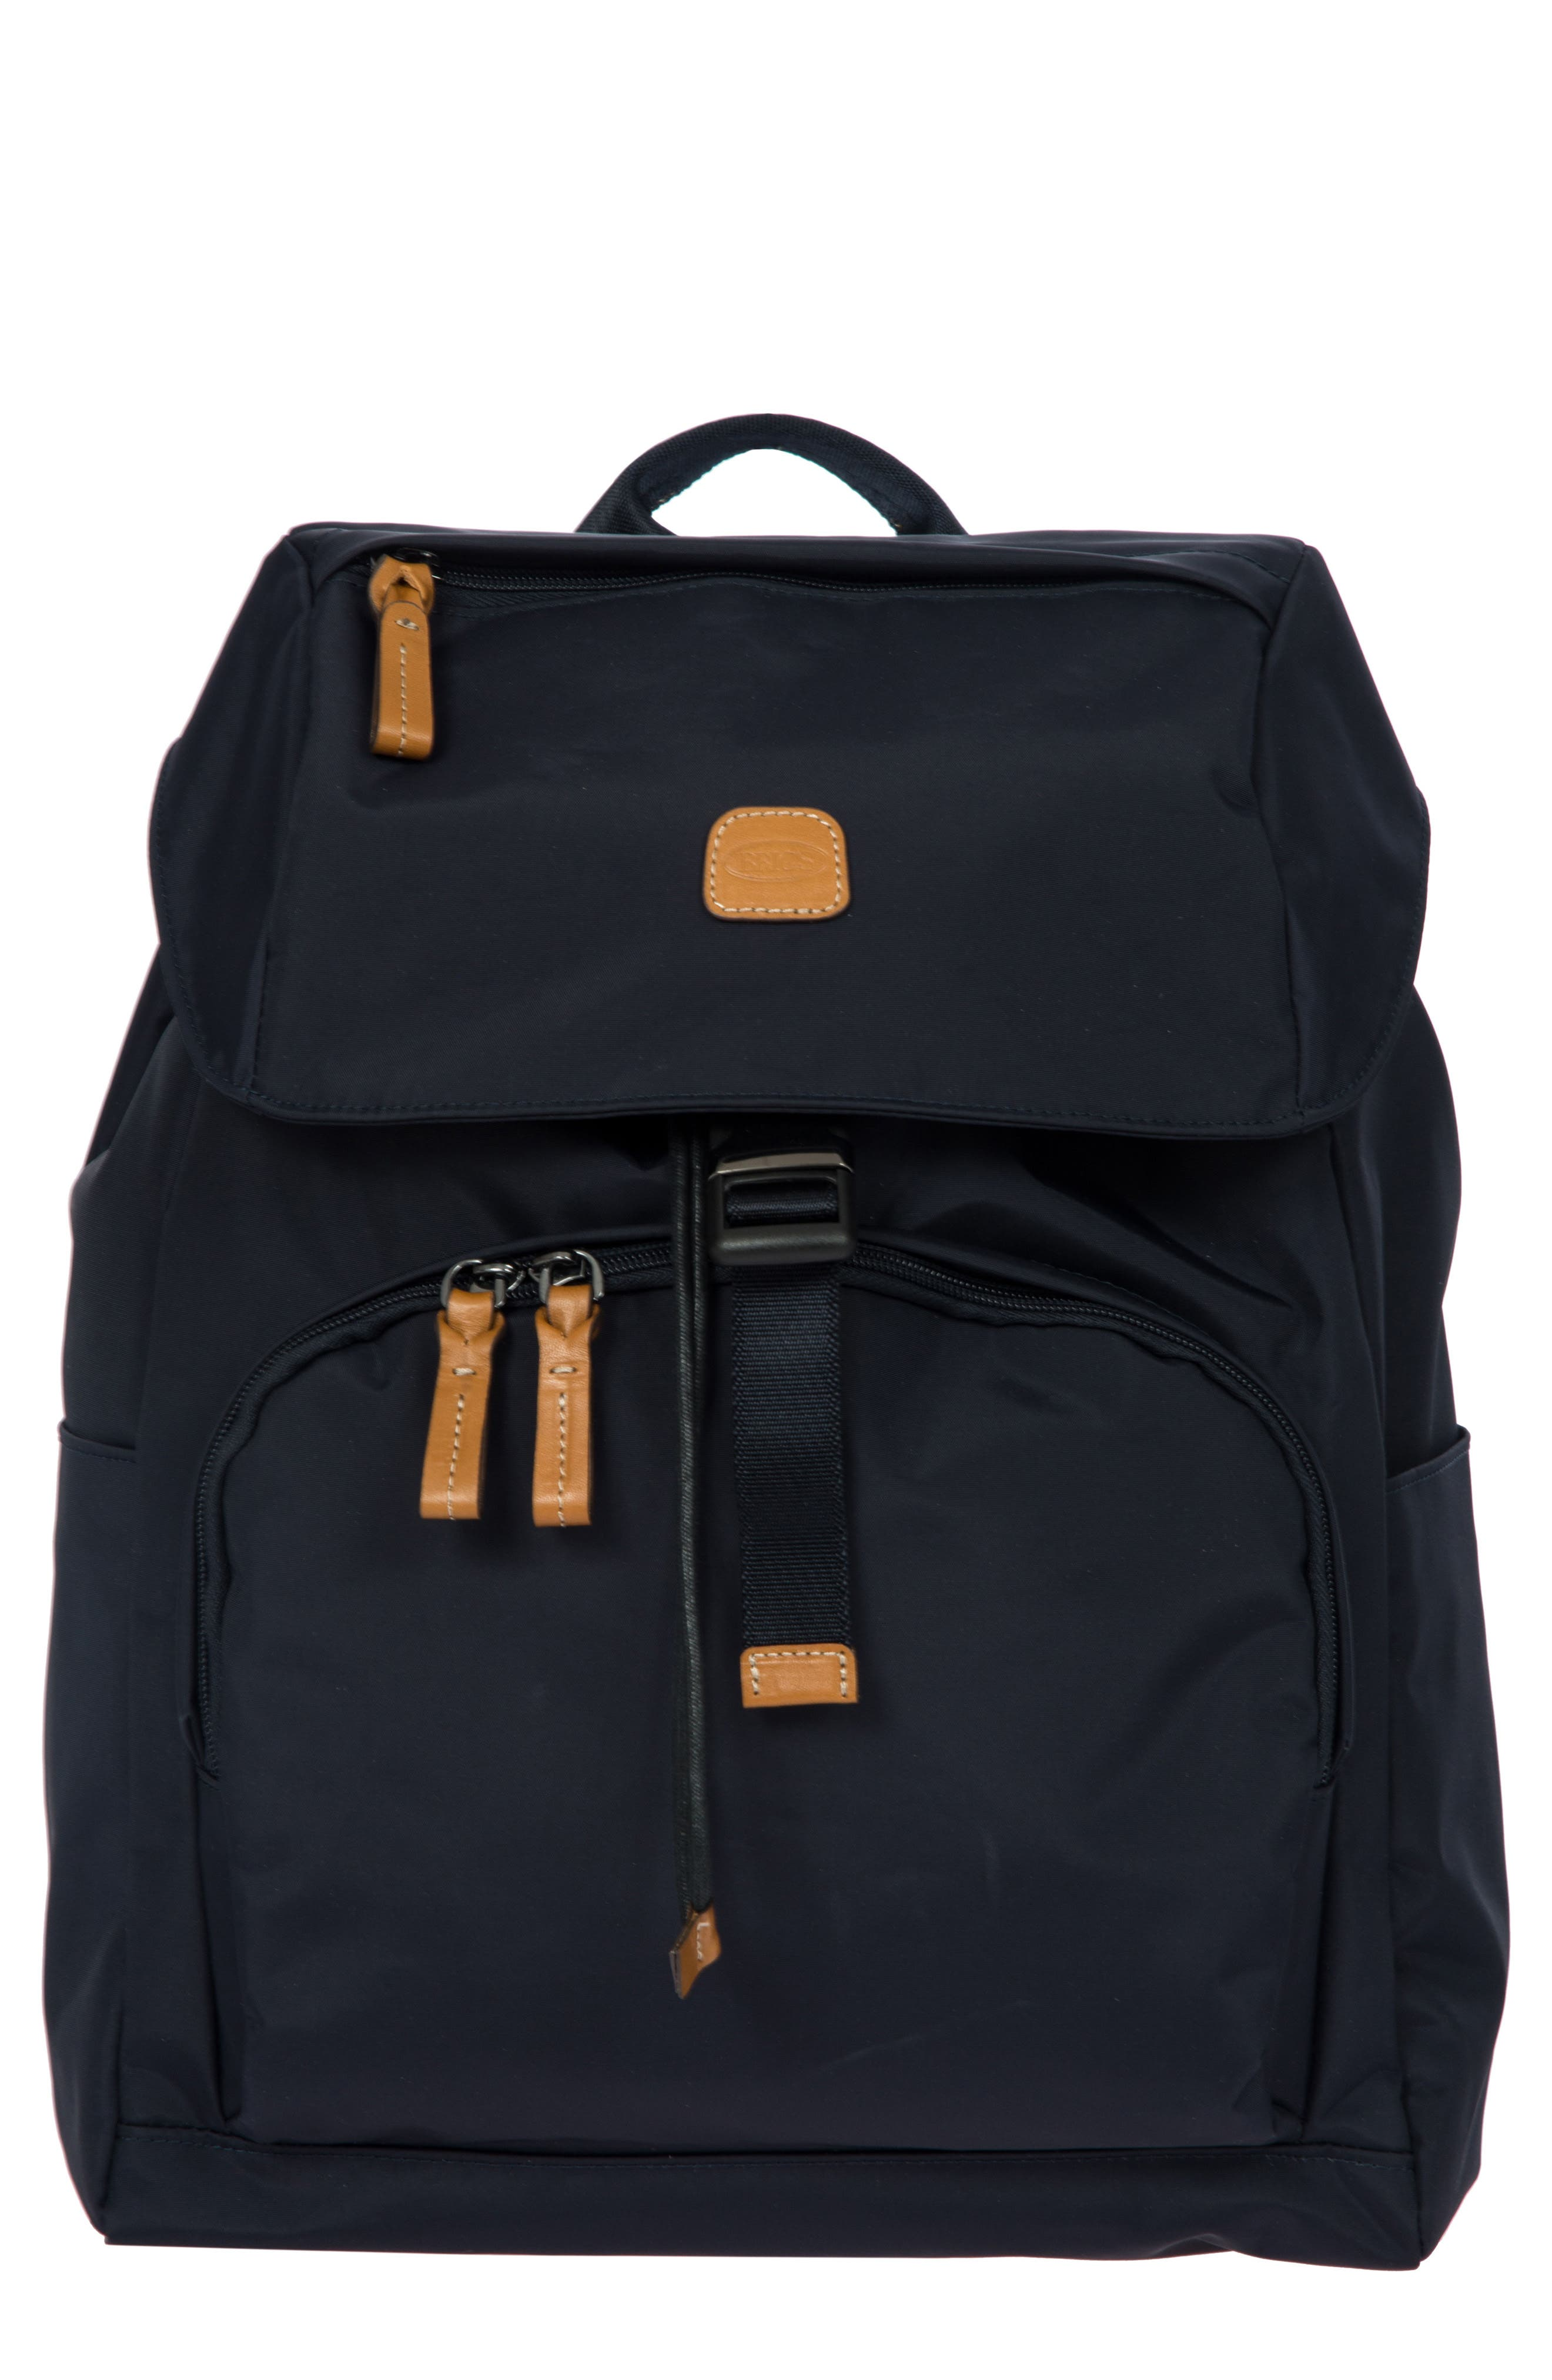 Main Image - Bric's X-Bag Travel Excursion Backpack